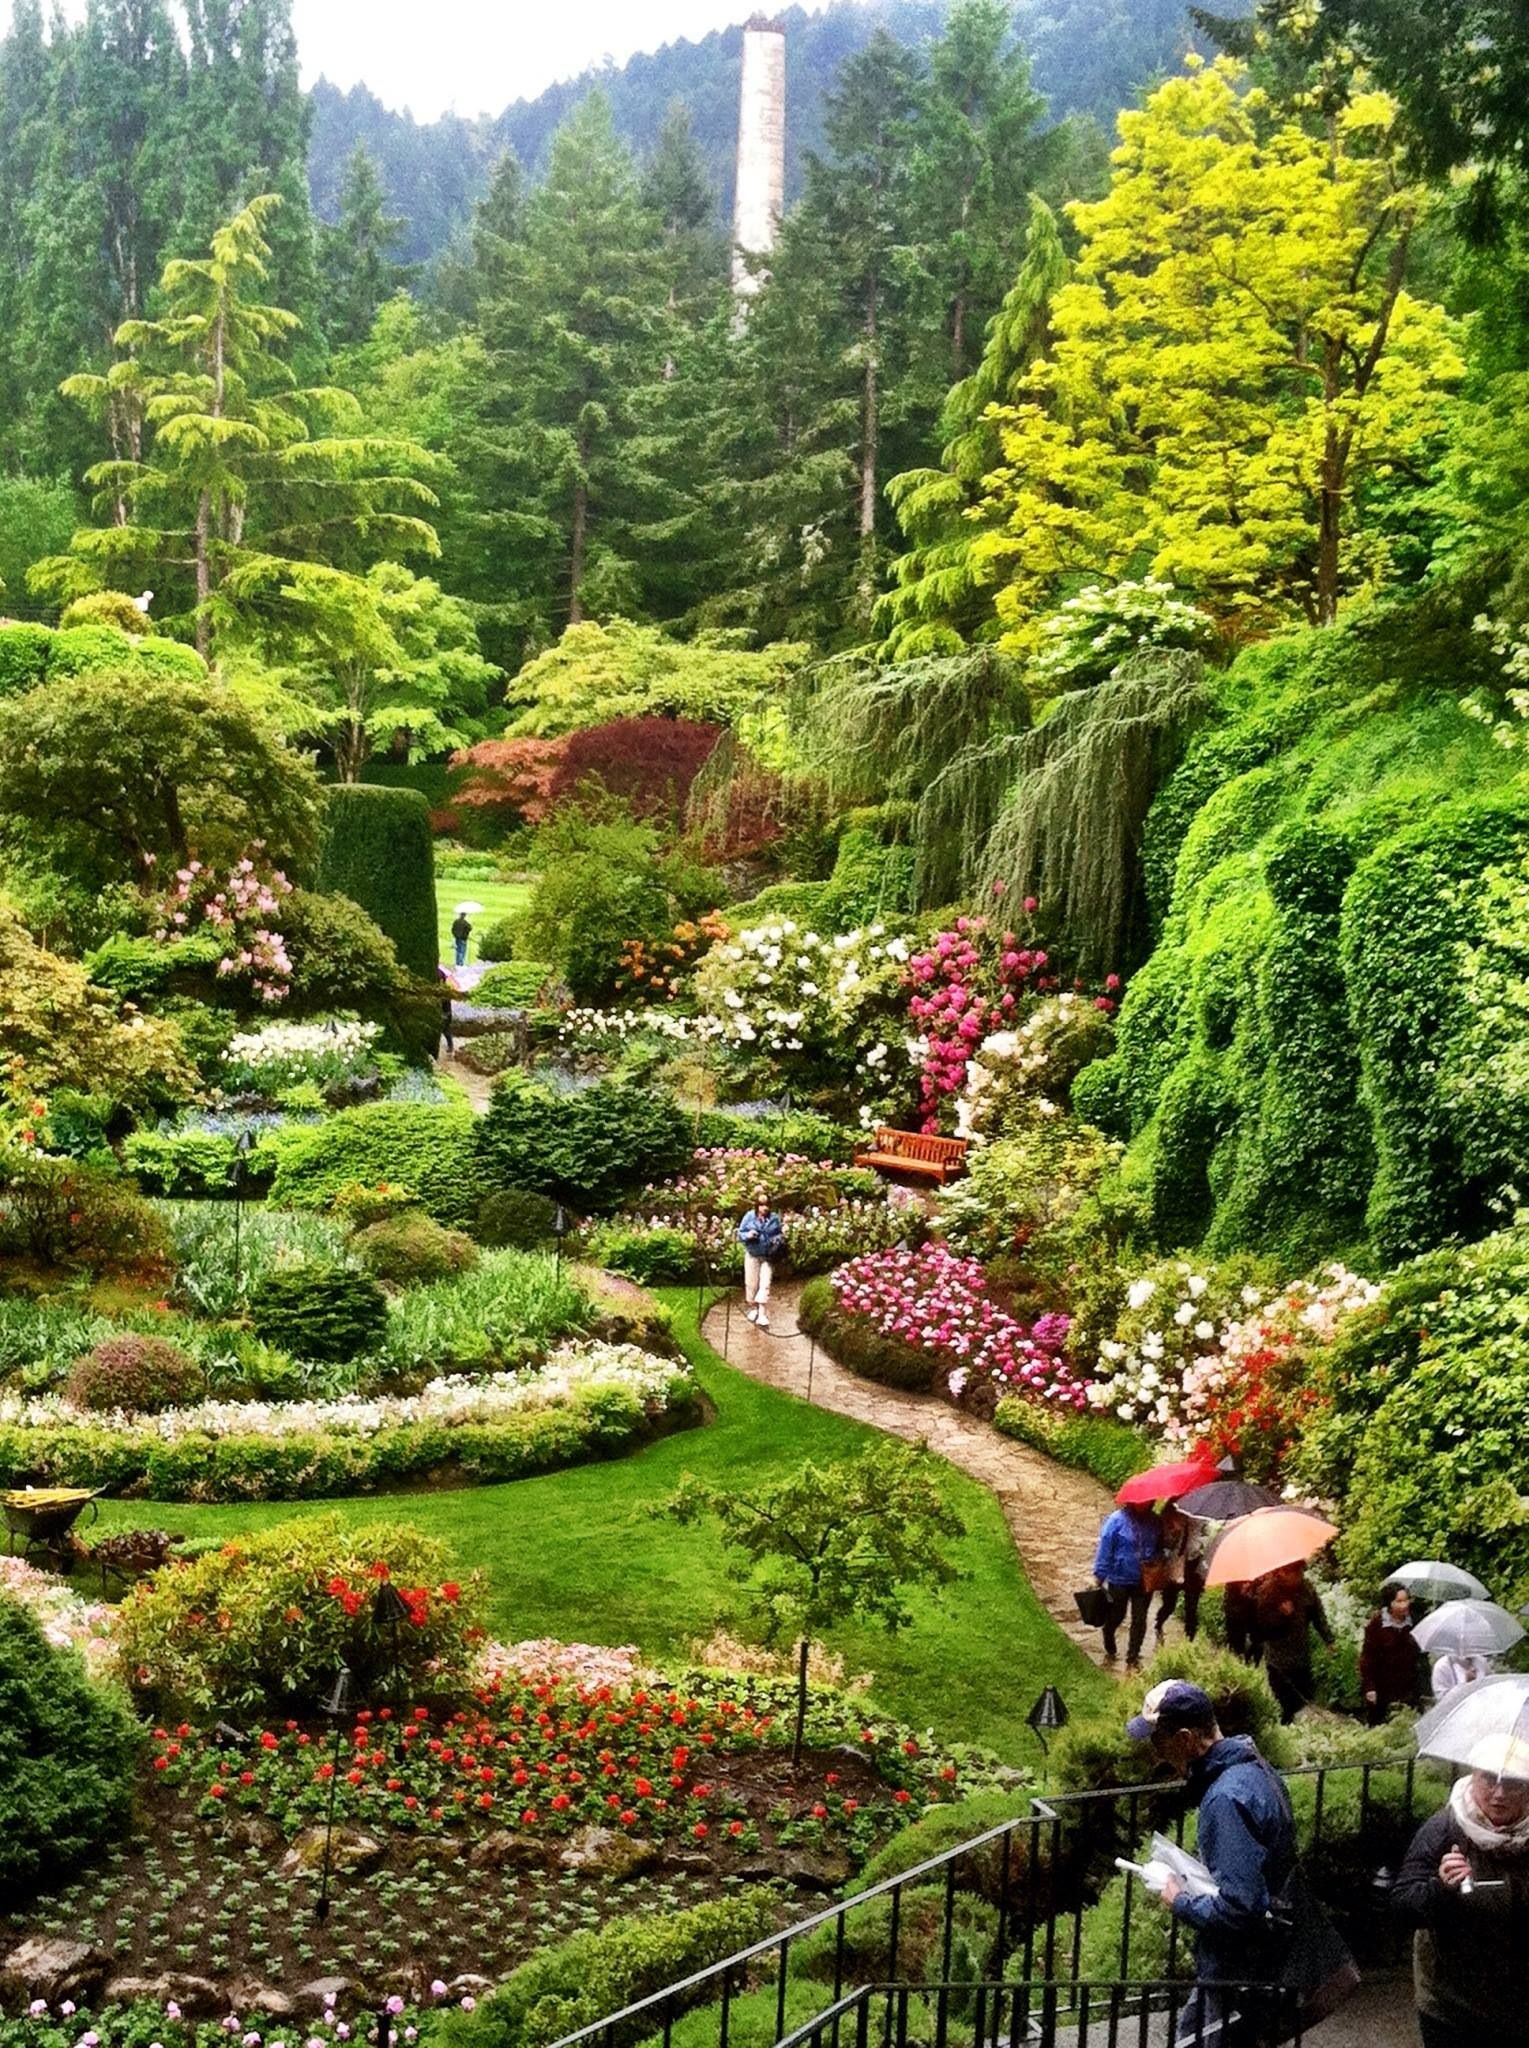 41e68523185e2cbe10814f77319c03f0 - Butchart Gardens Best Month To Visit